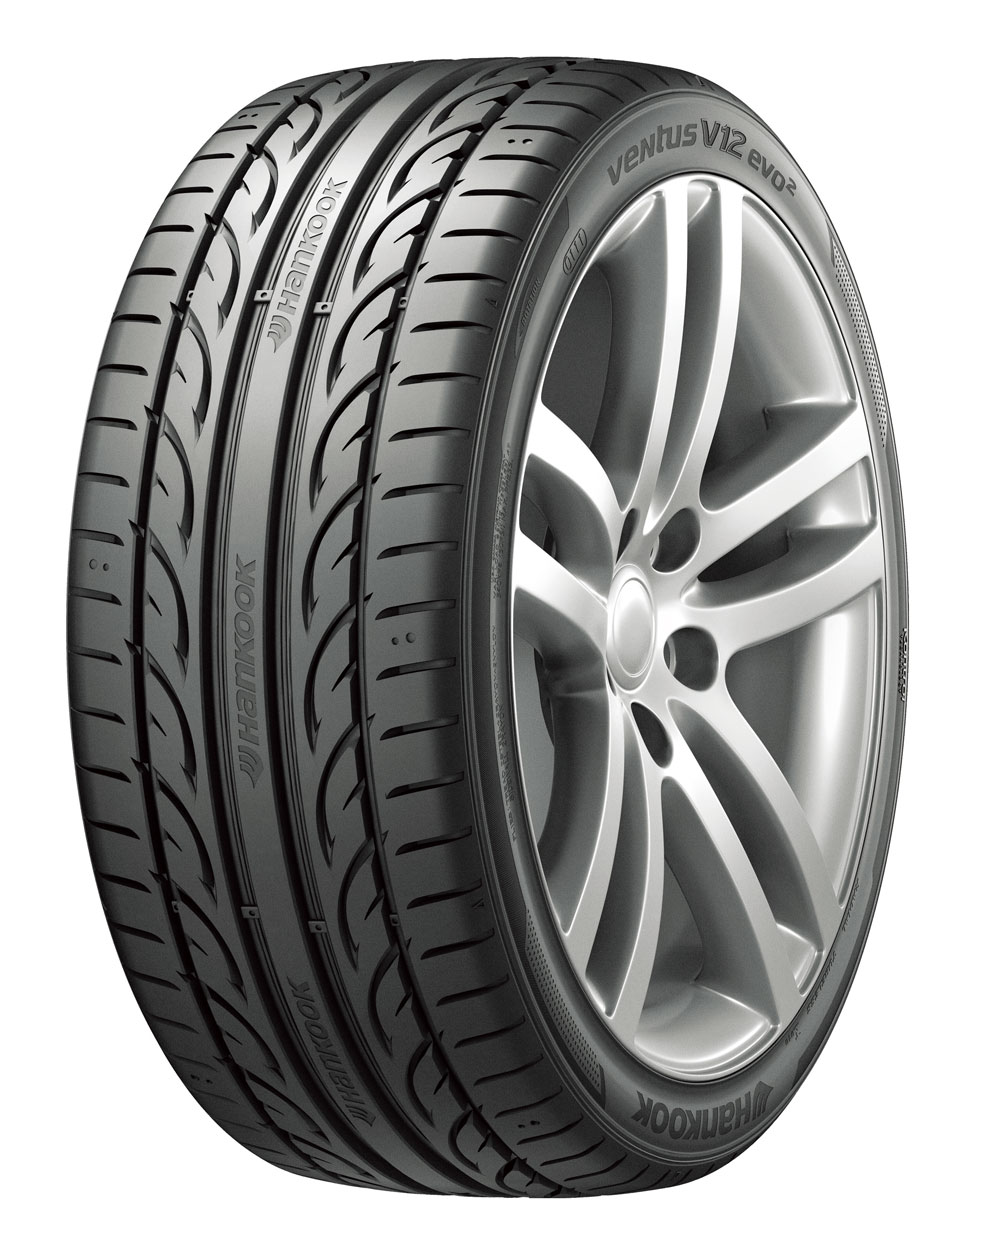 Buy new Hankook Ventus V12 Evo² (K120) tyres online from PTA Garage Services